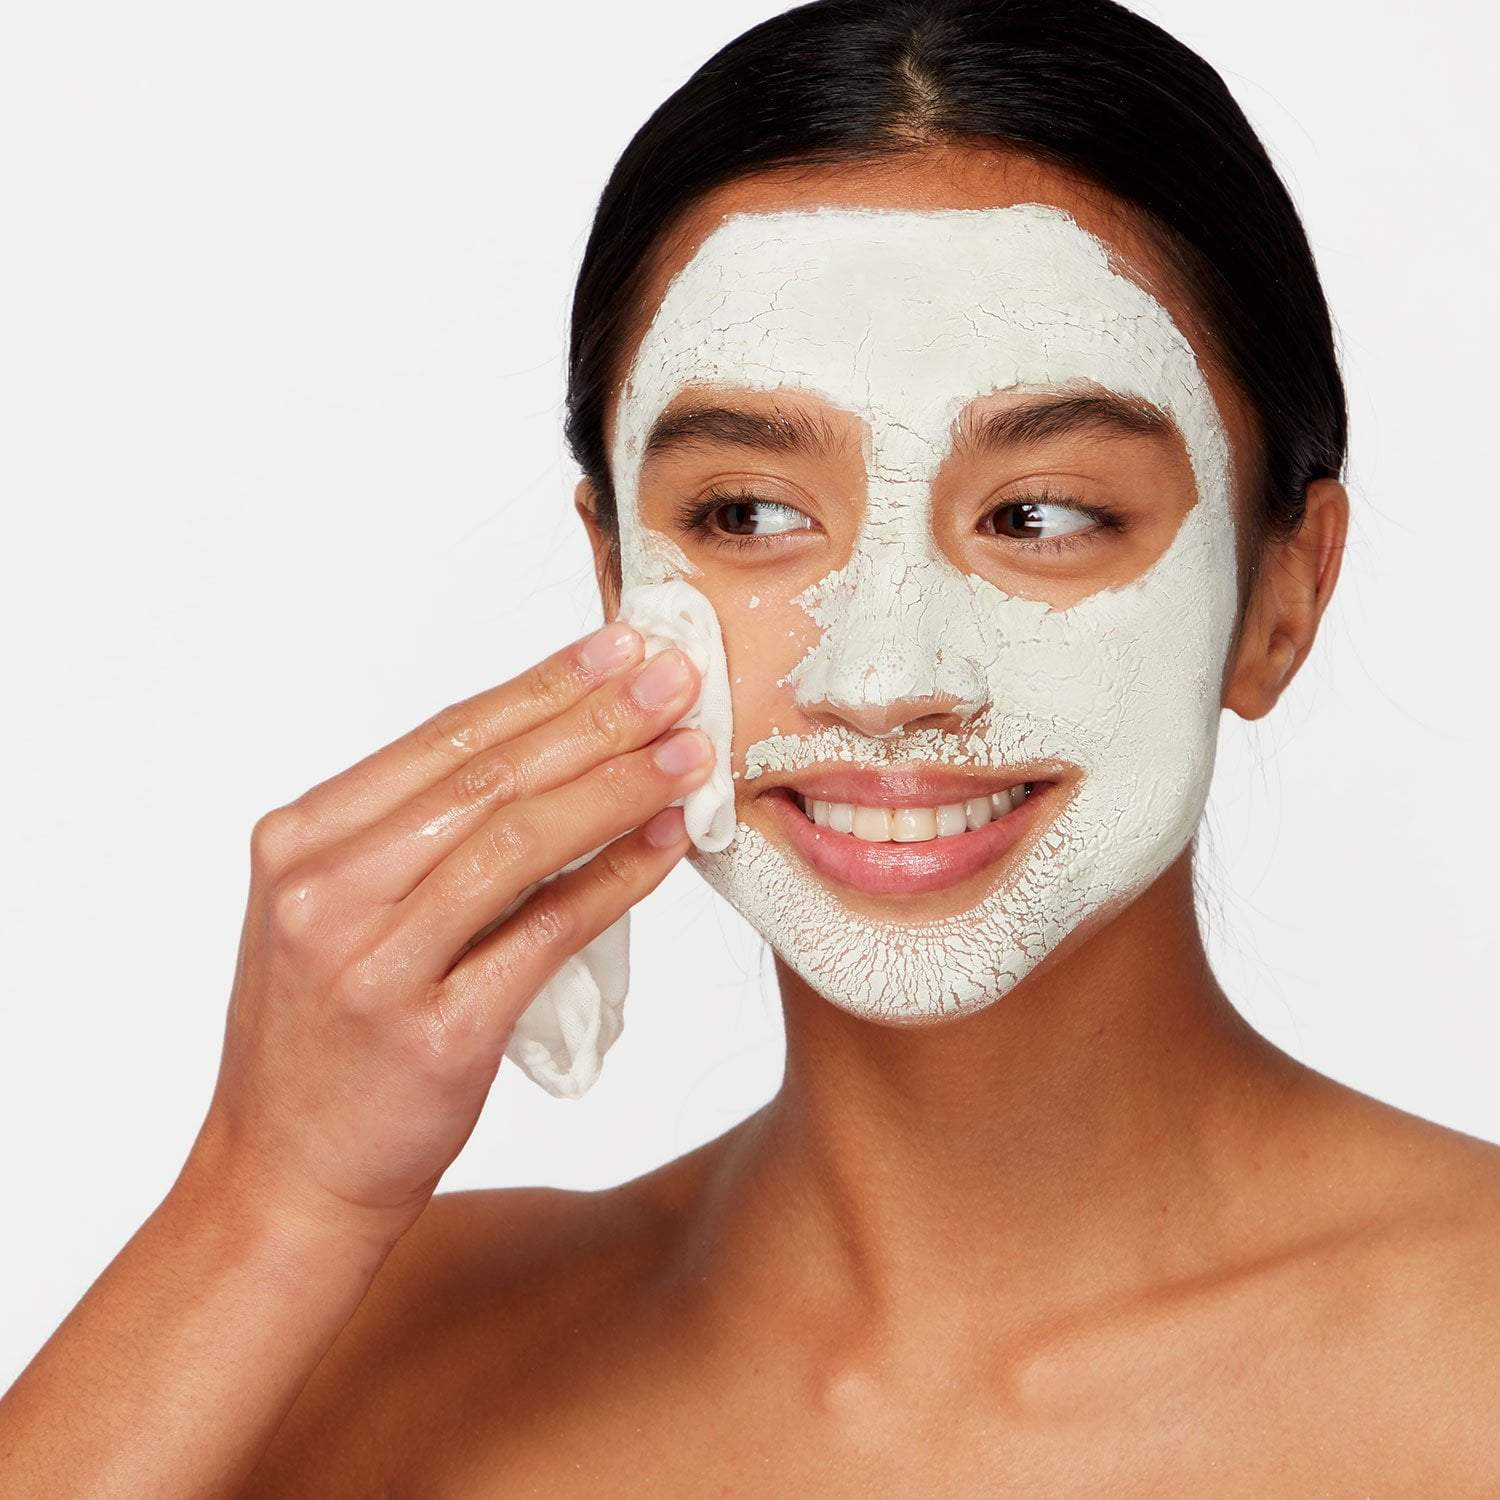 Spot-fighting, purifying clay cleanser.